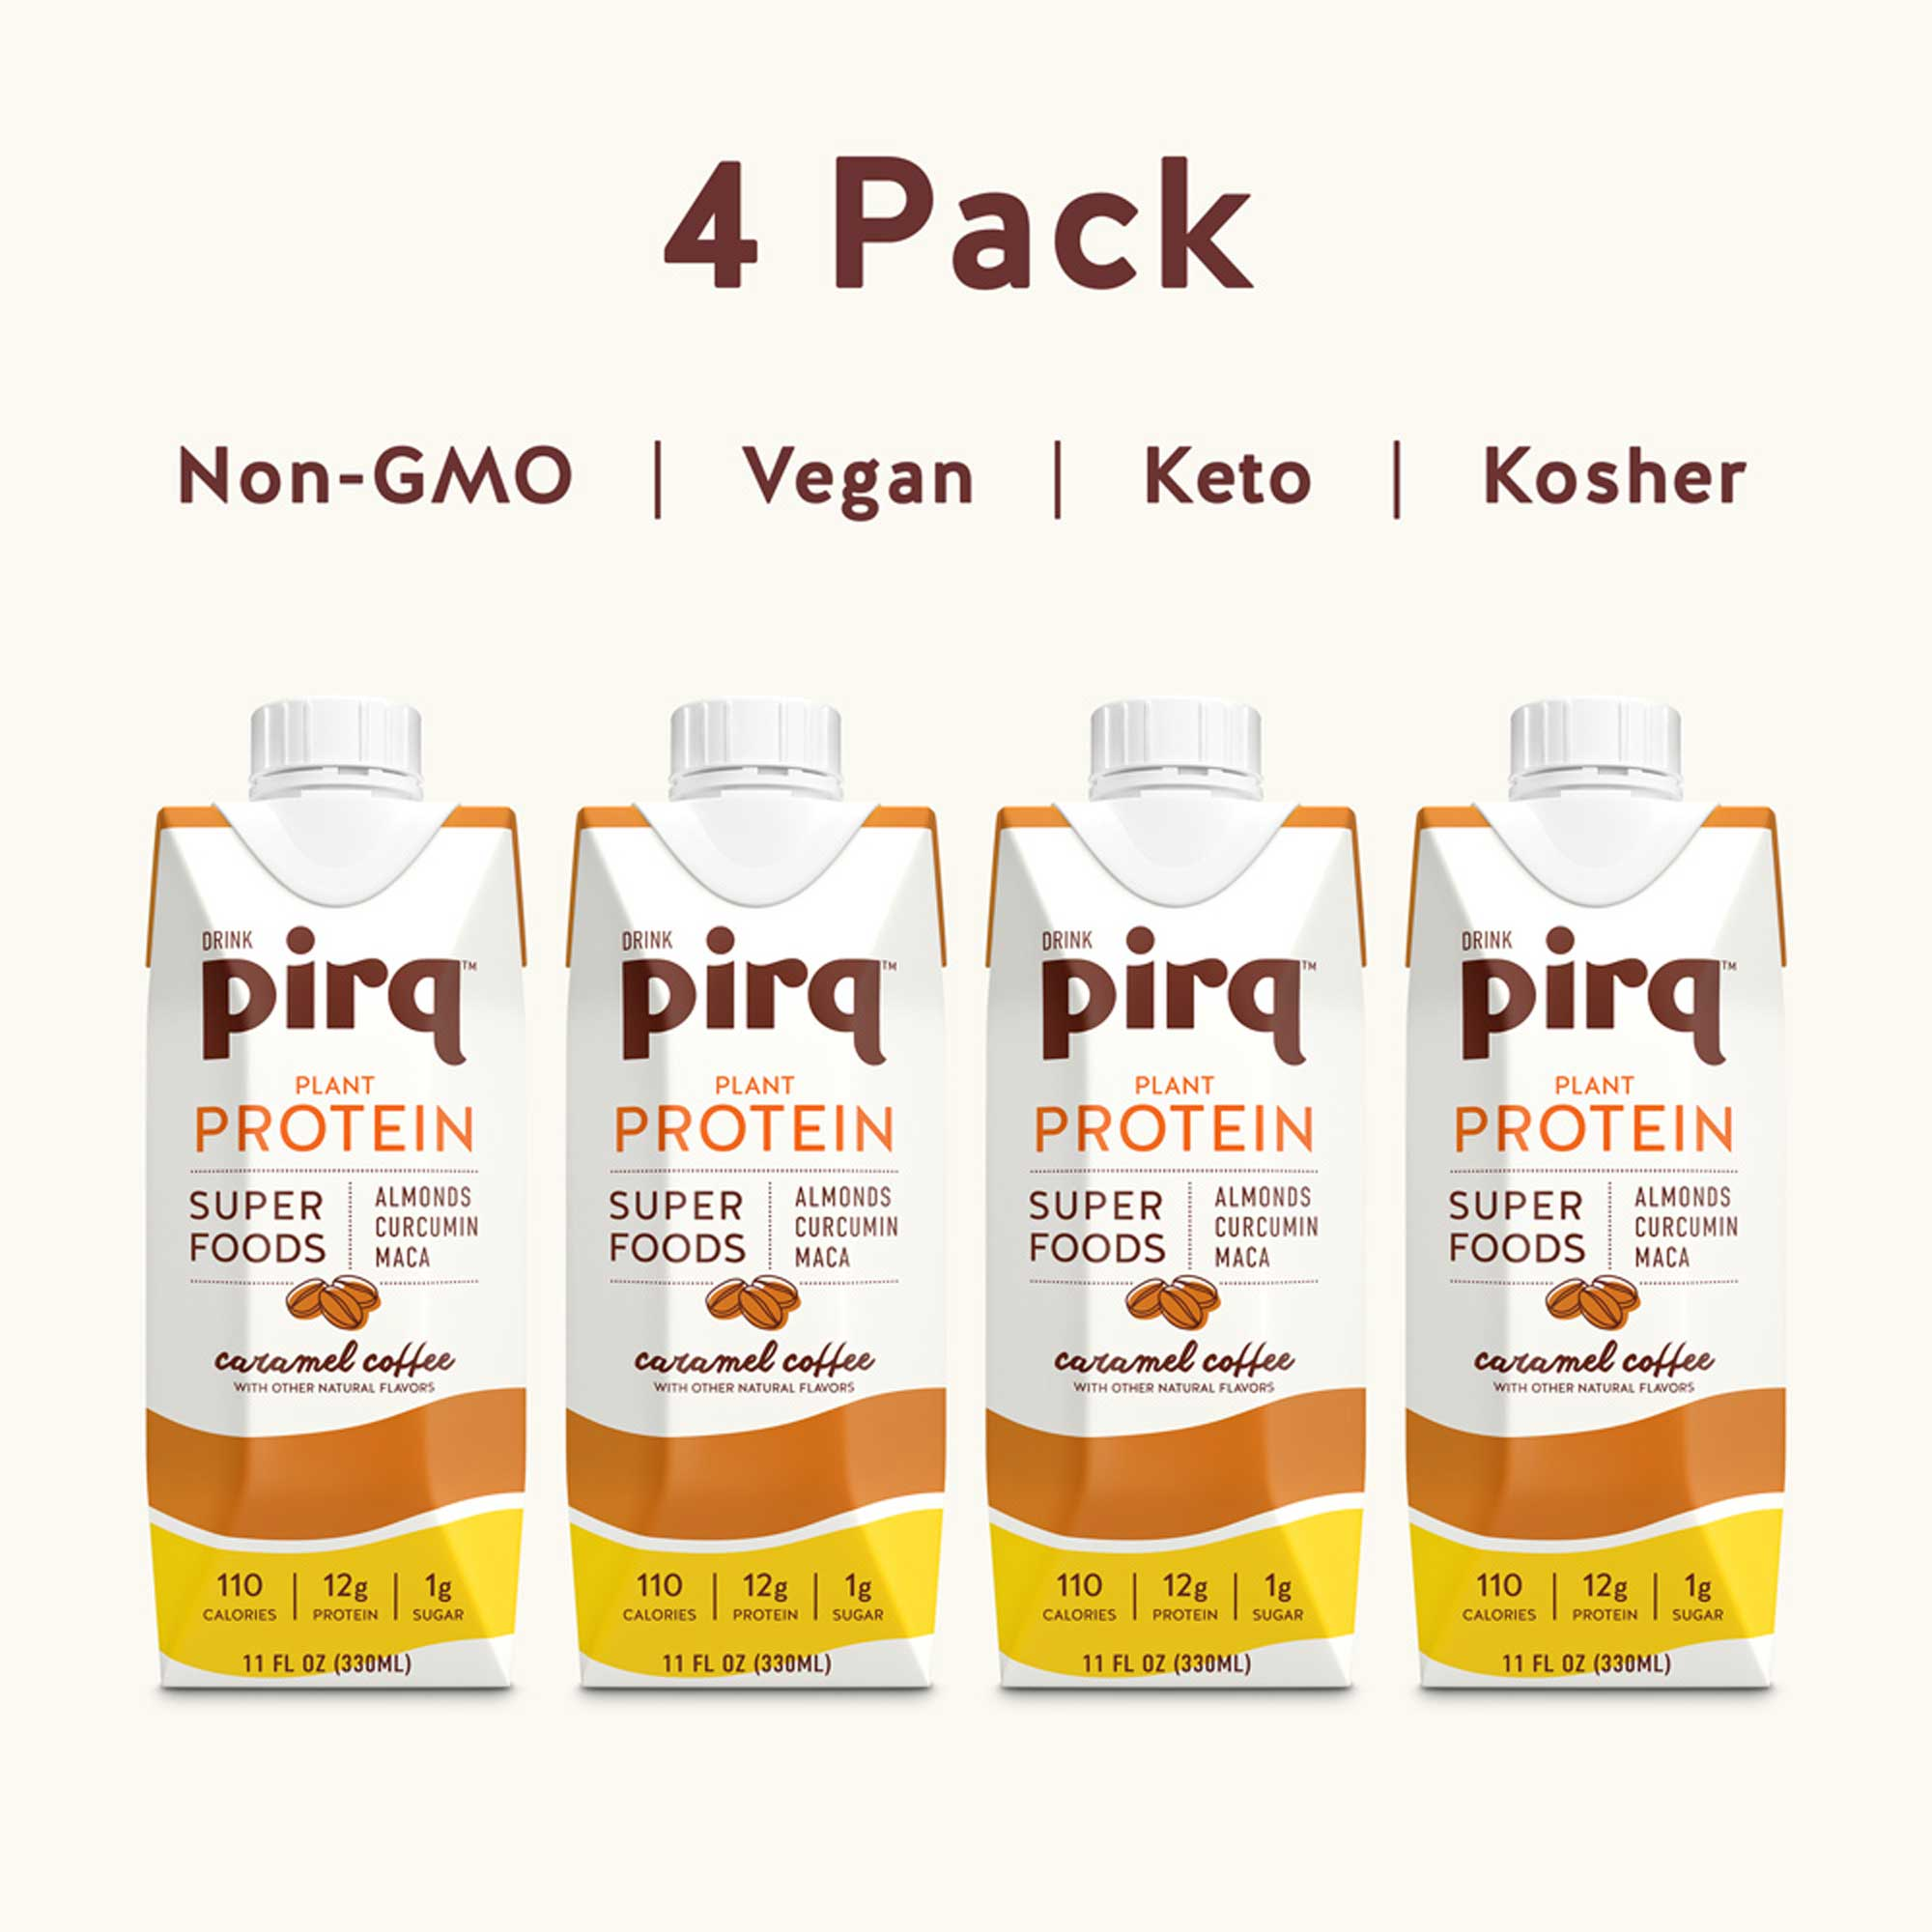 Pirq 4 Pack Box with 4 11 fl oz bottles